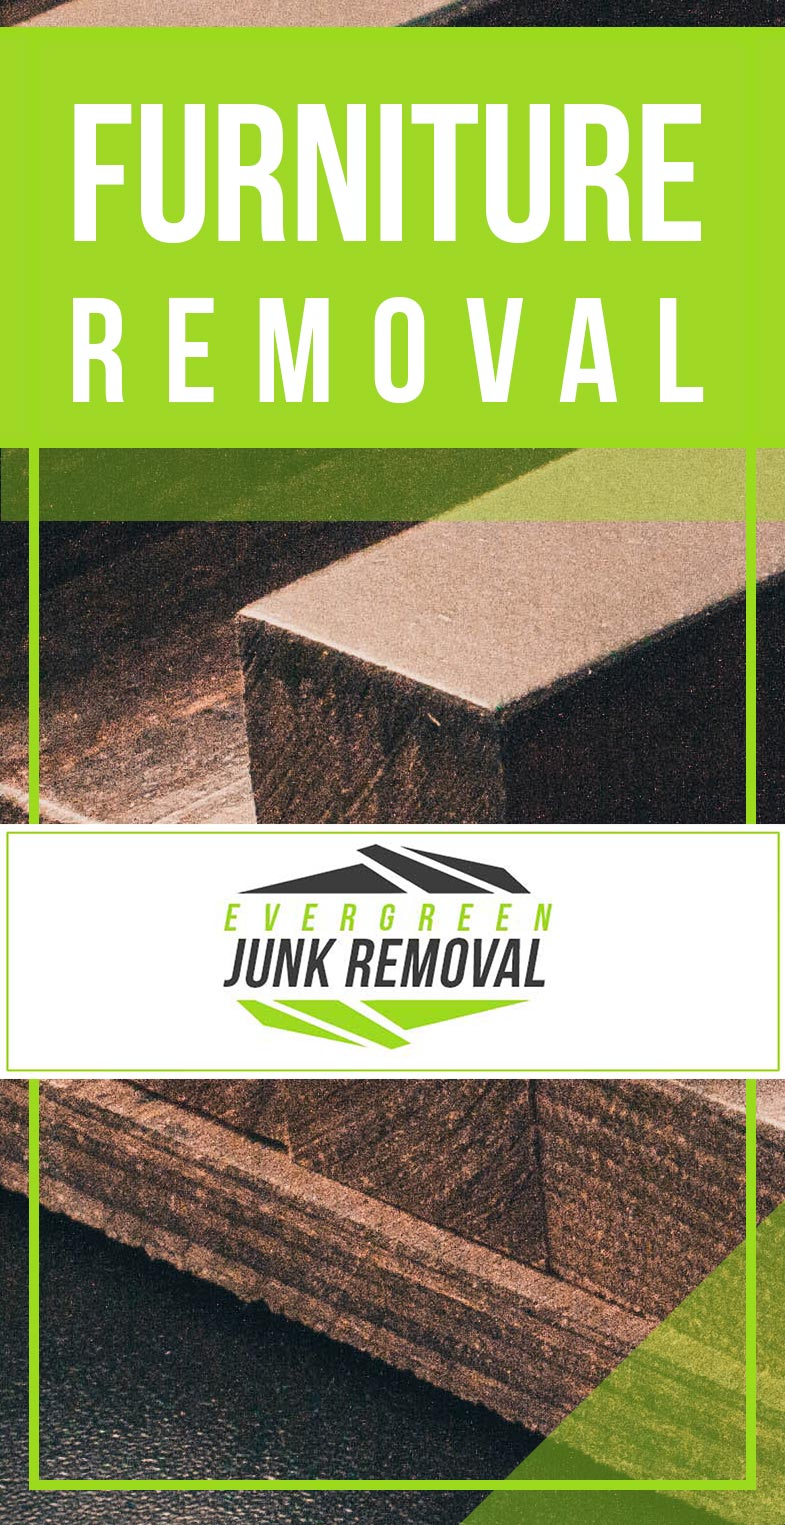 Junk Removal Greenacres Furniture Removal